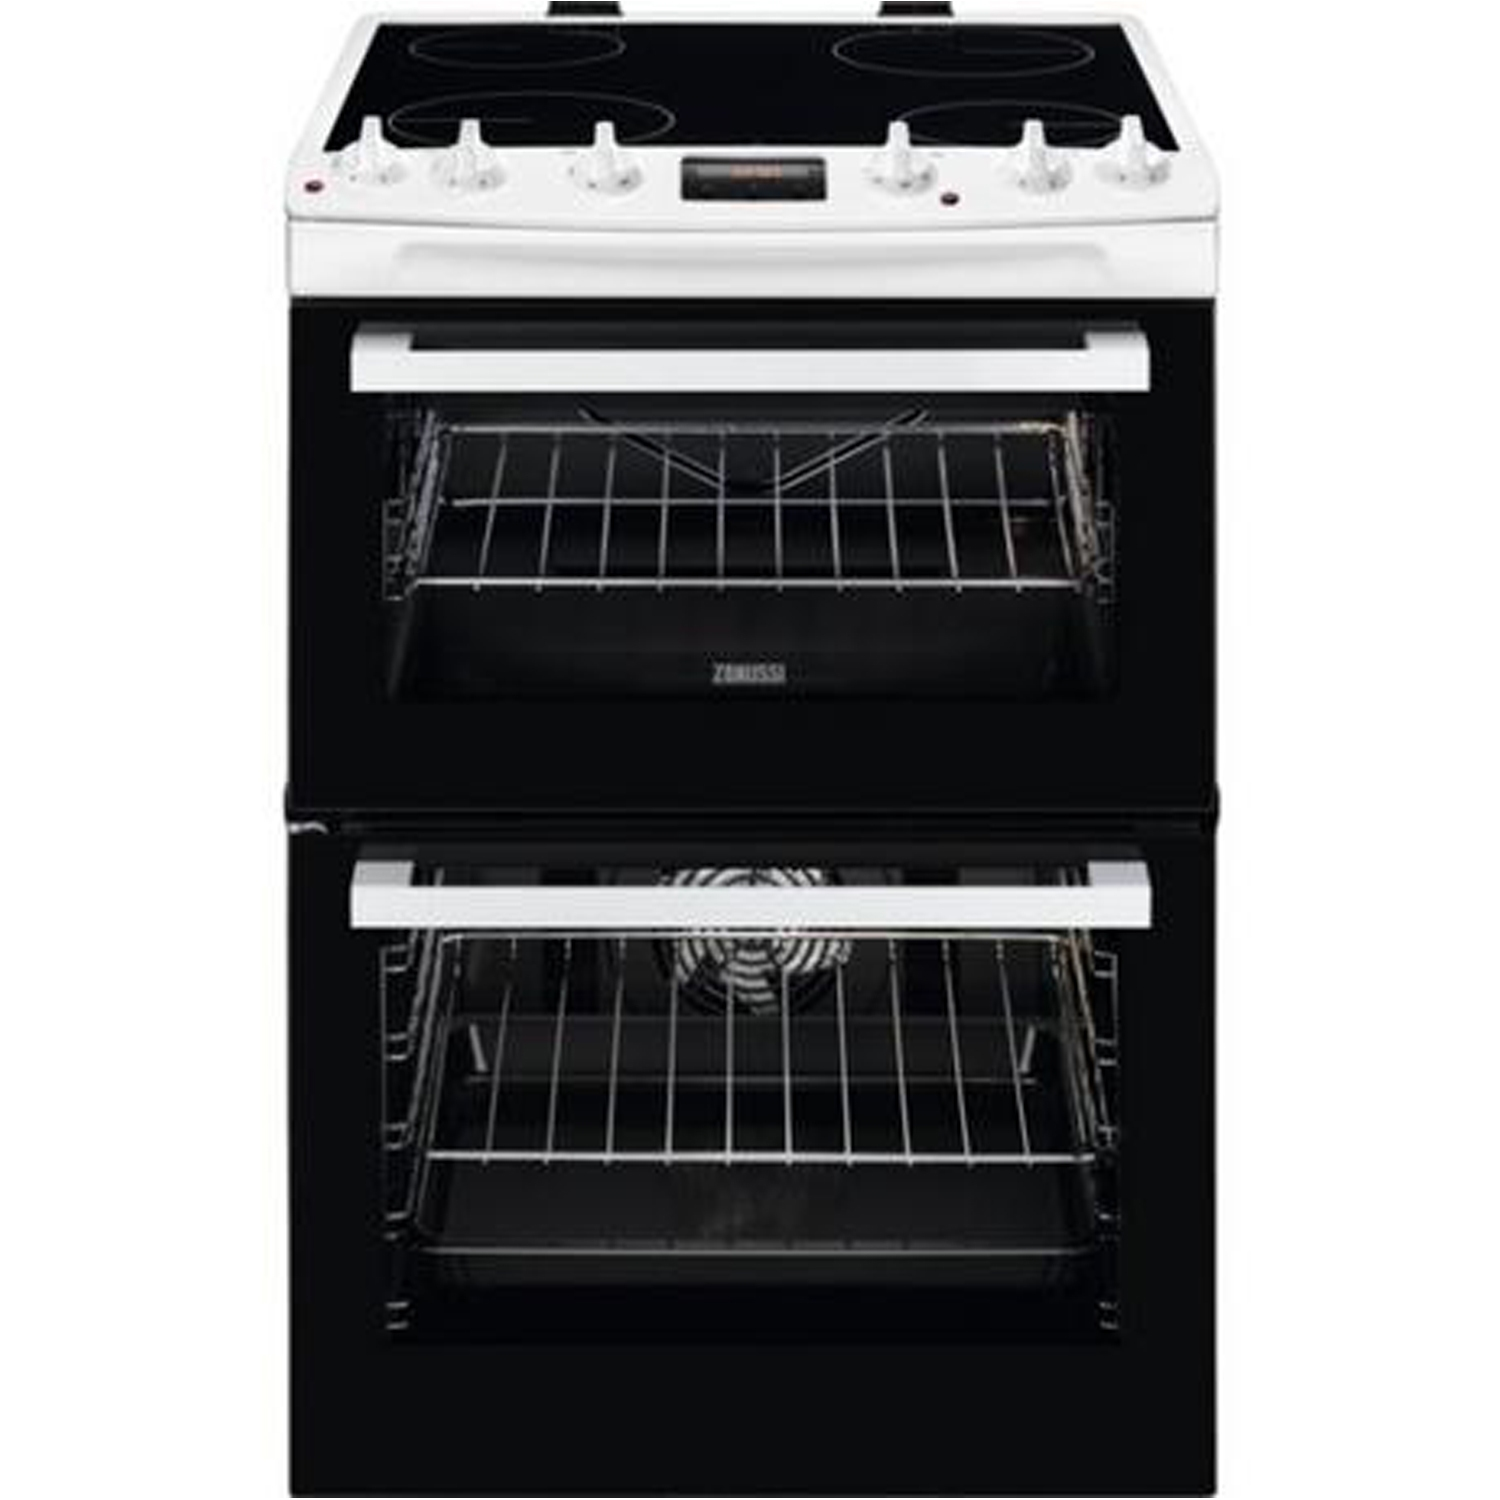 Zanussi 60cm Electric Double Oven with Ceramic Hob - White - A/A Rated - 0